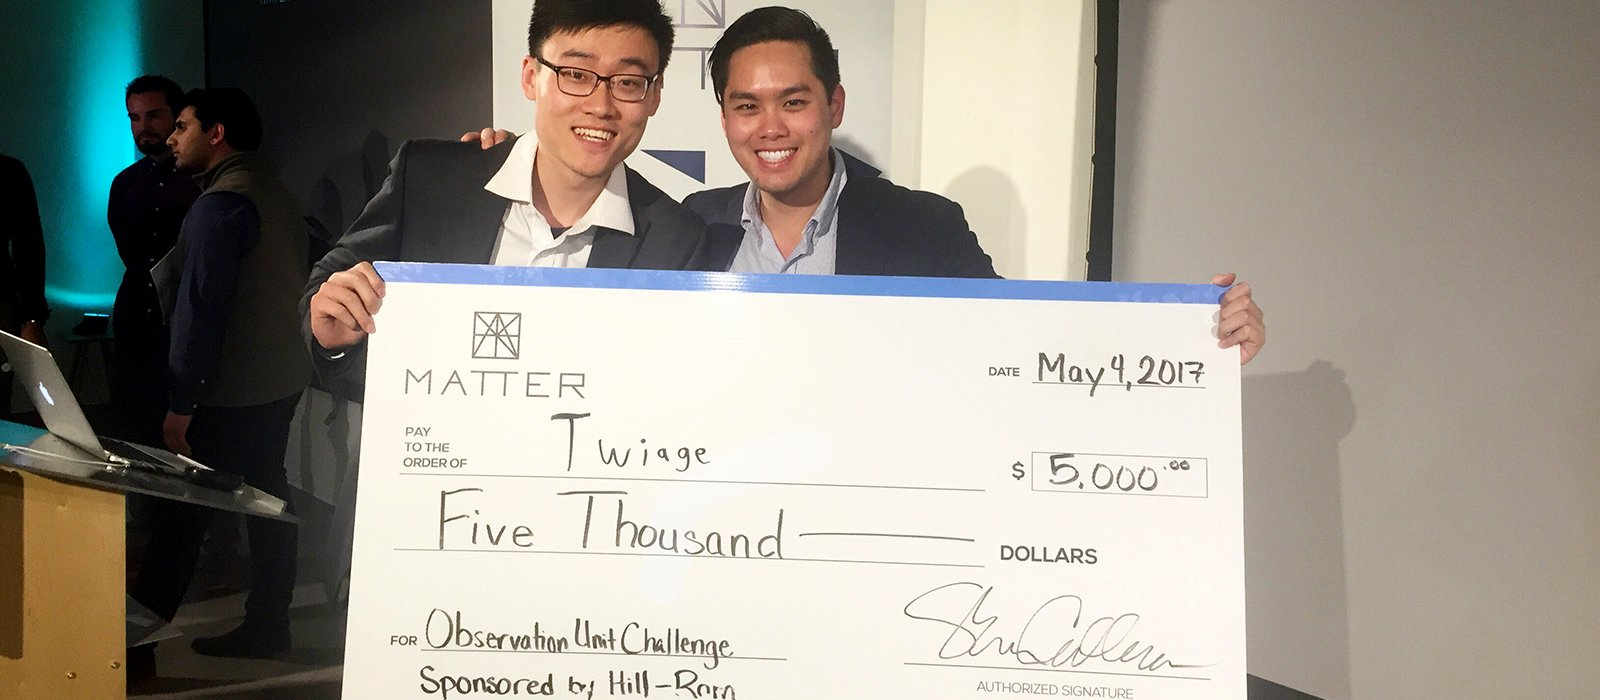 Oude Gao and Chris Than receive check for $5,000